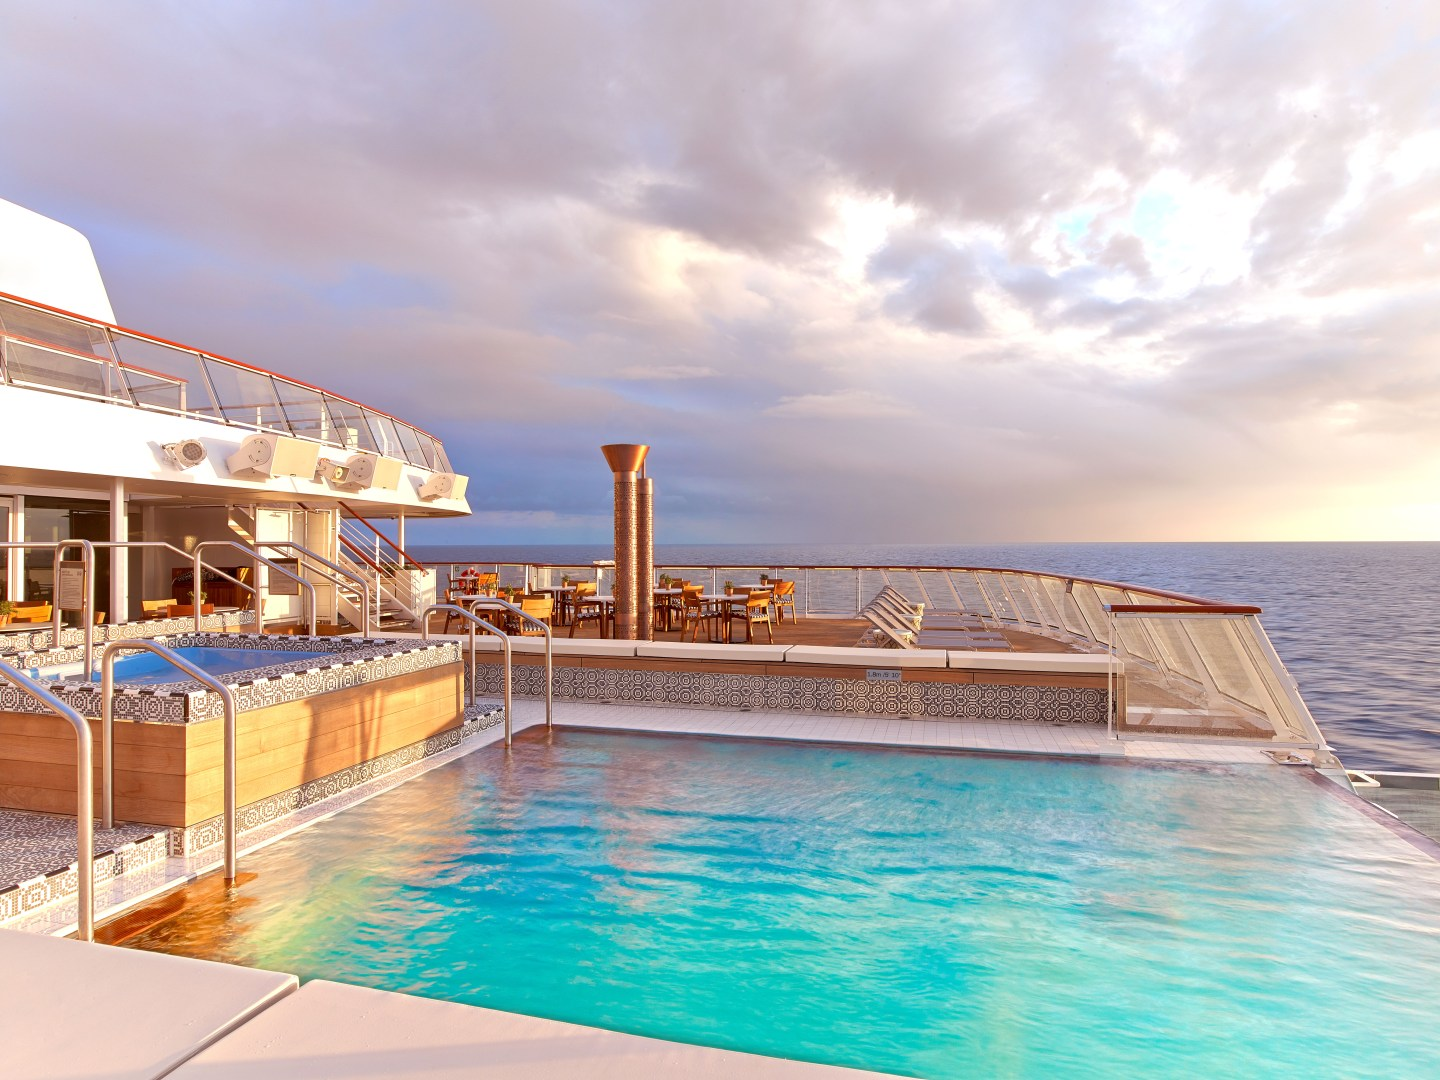 Infinity Pool viking cruises